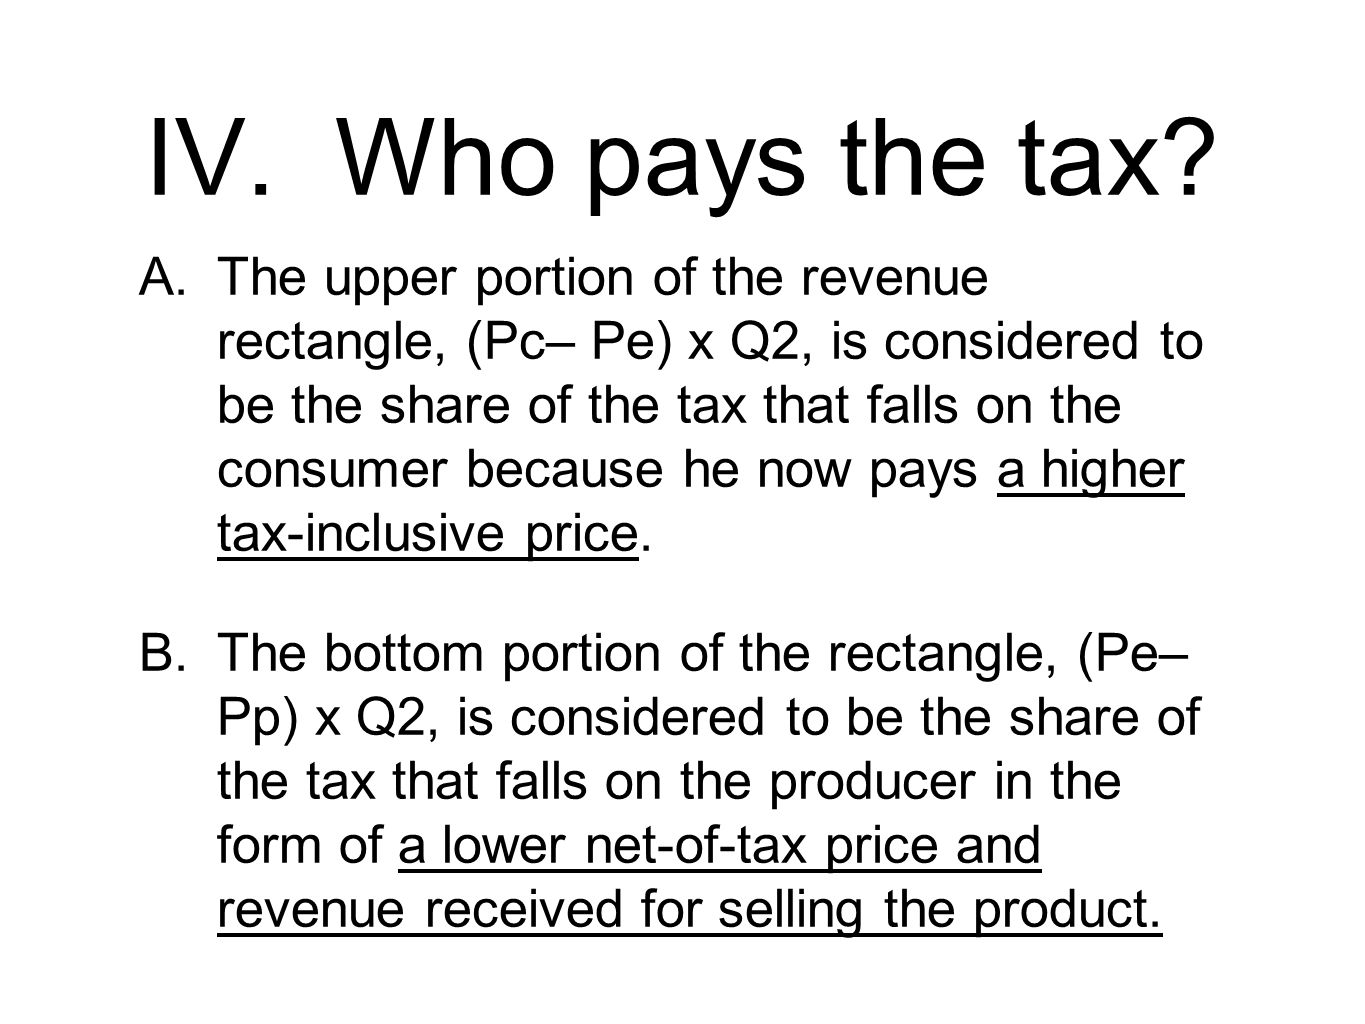 IV. Who pays the tax? A.The upper portion of the revenue rectangle, (Pc– Pe) x Q2, is considered to be the share of the tax that falls on the consumer